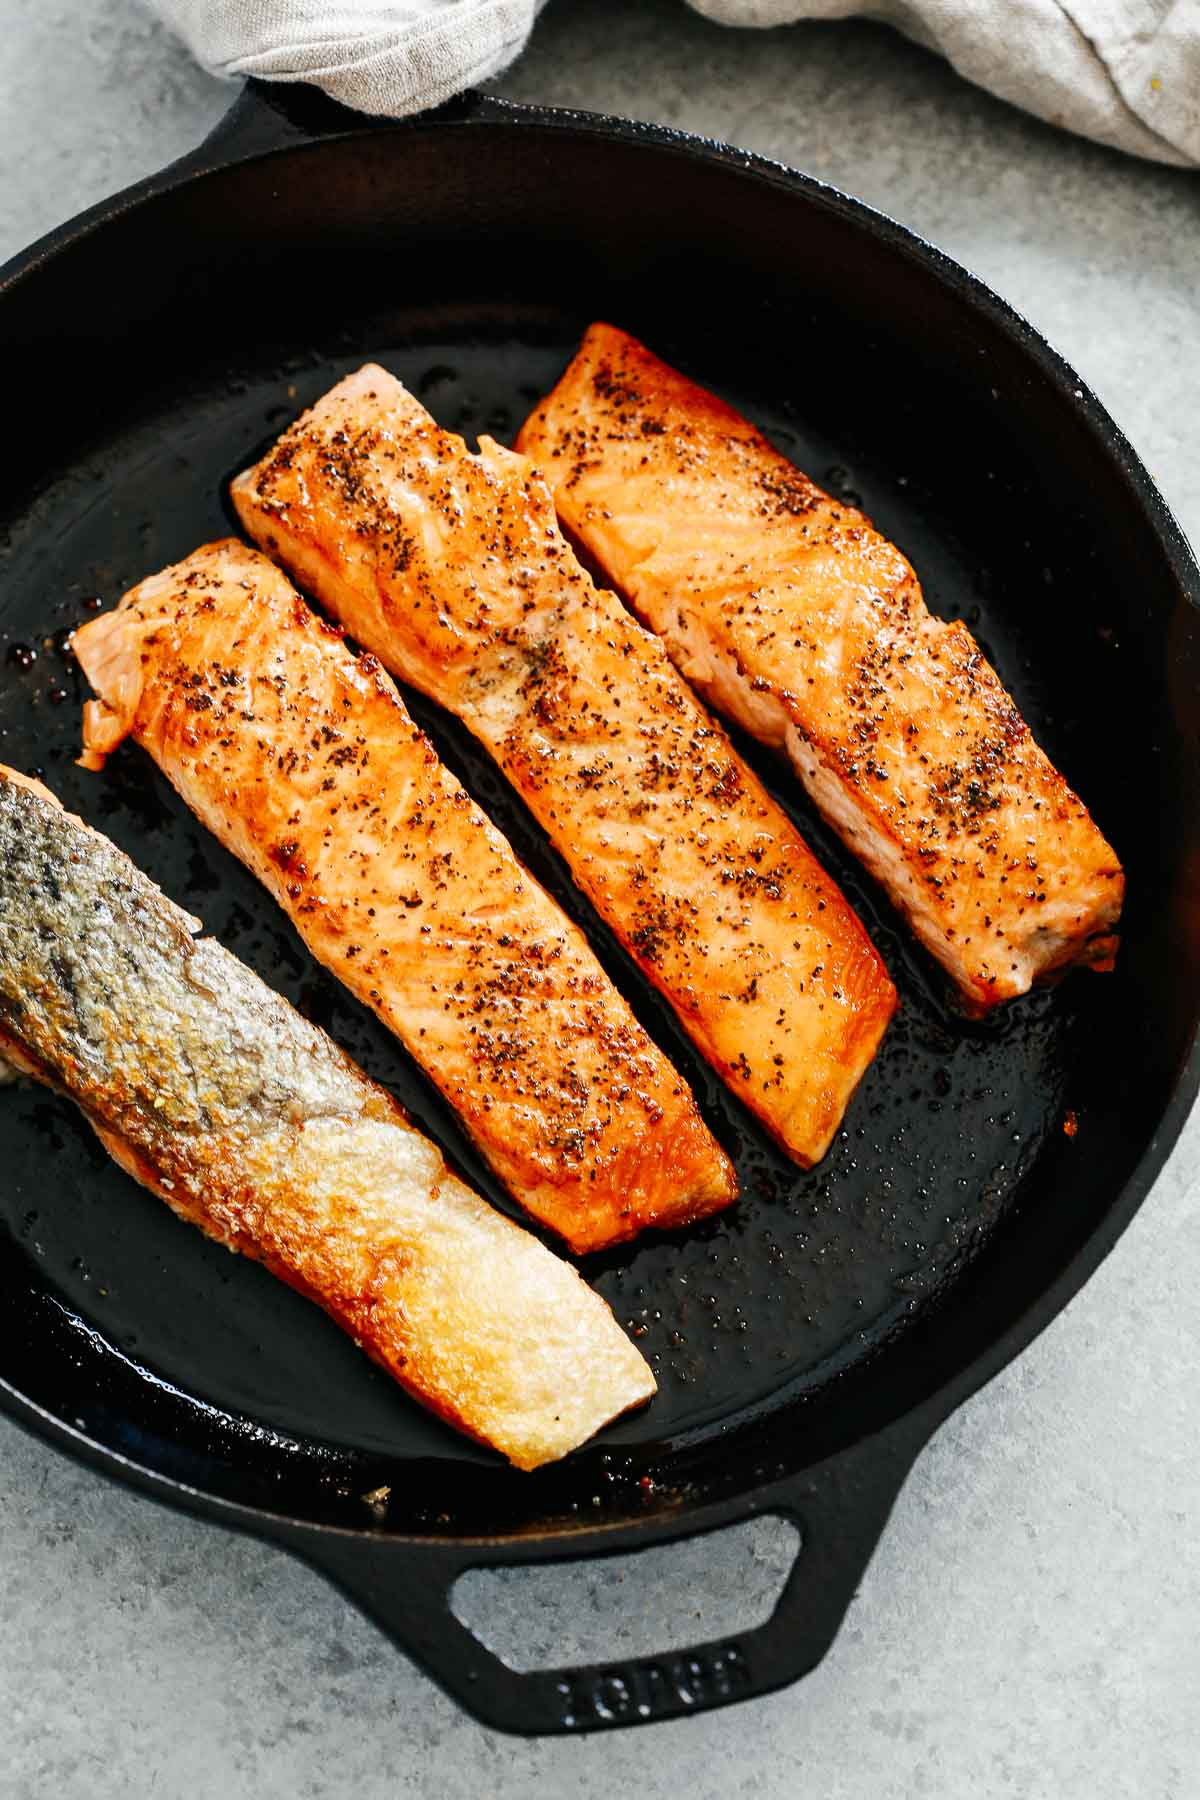 4 pieces of fish in black iron skillet